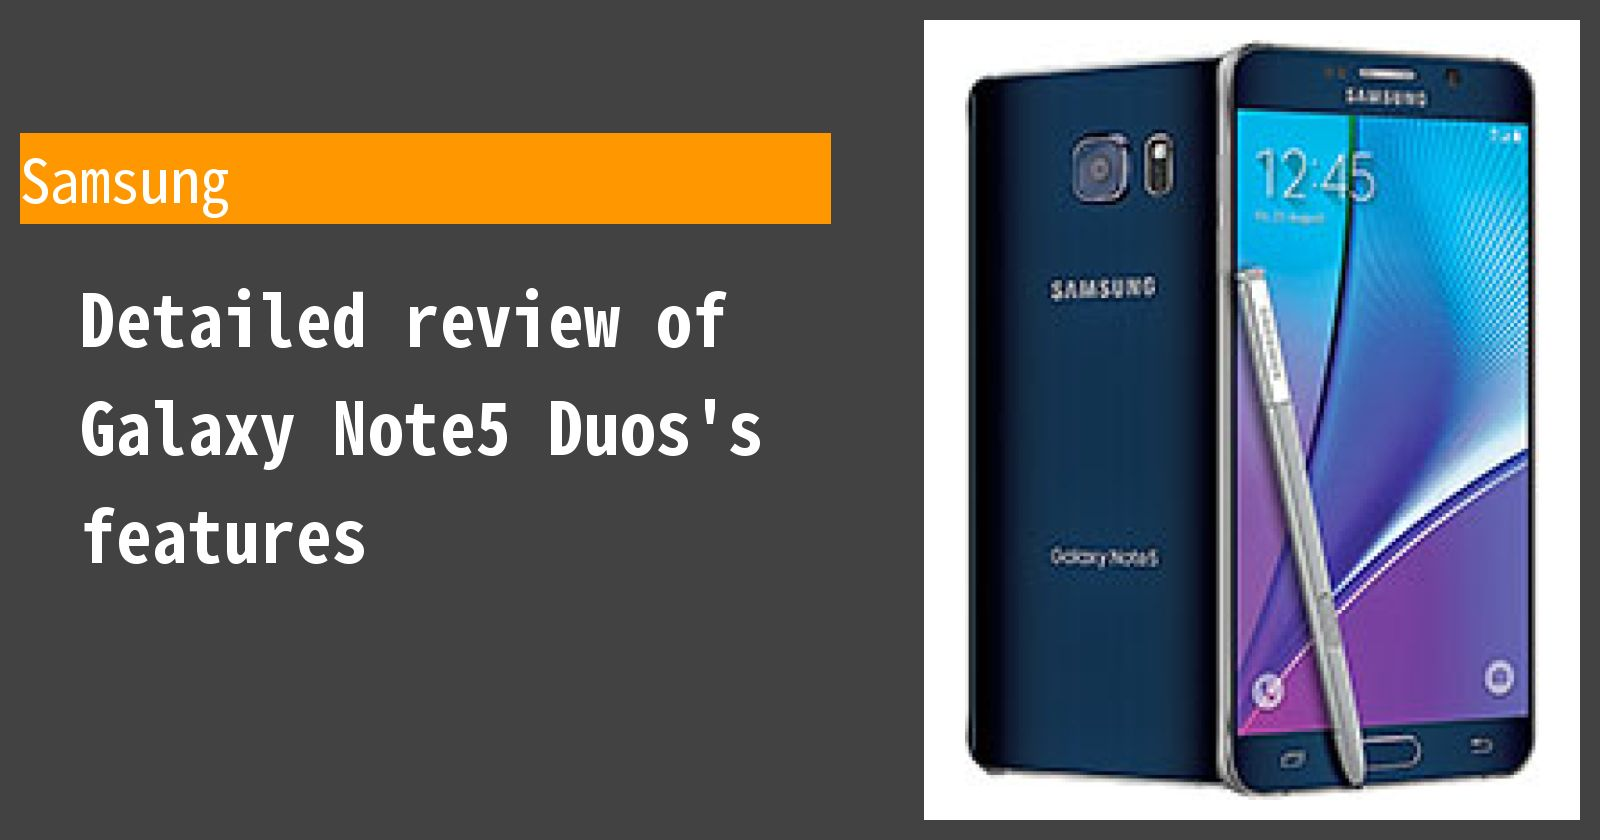 Detailed review of Galaxy Note5 Duos's features